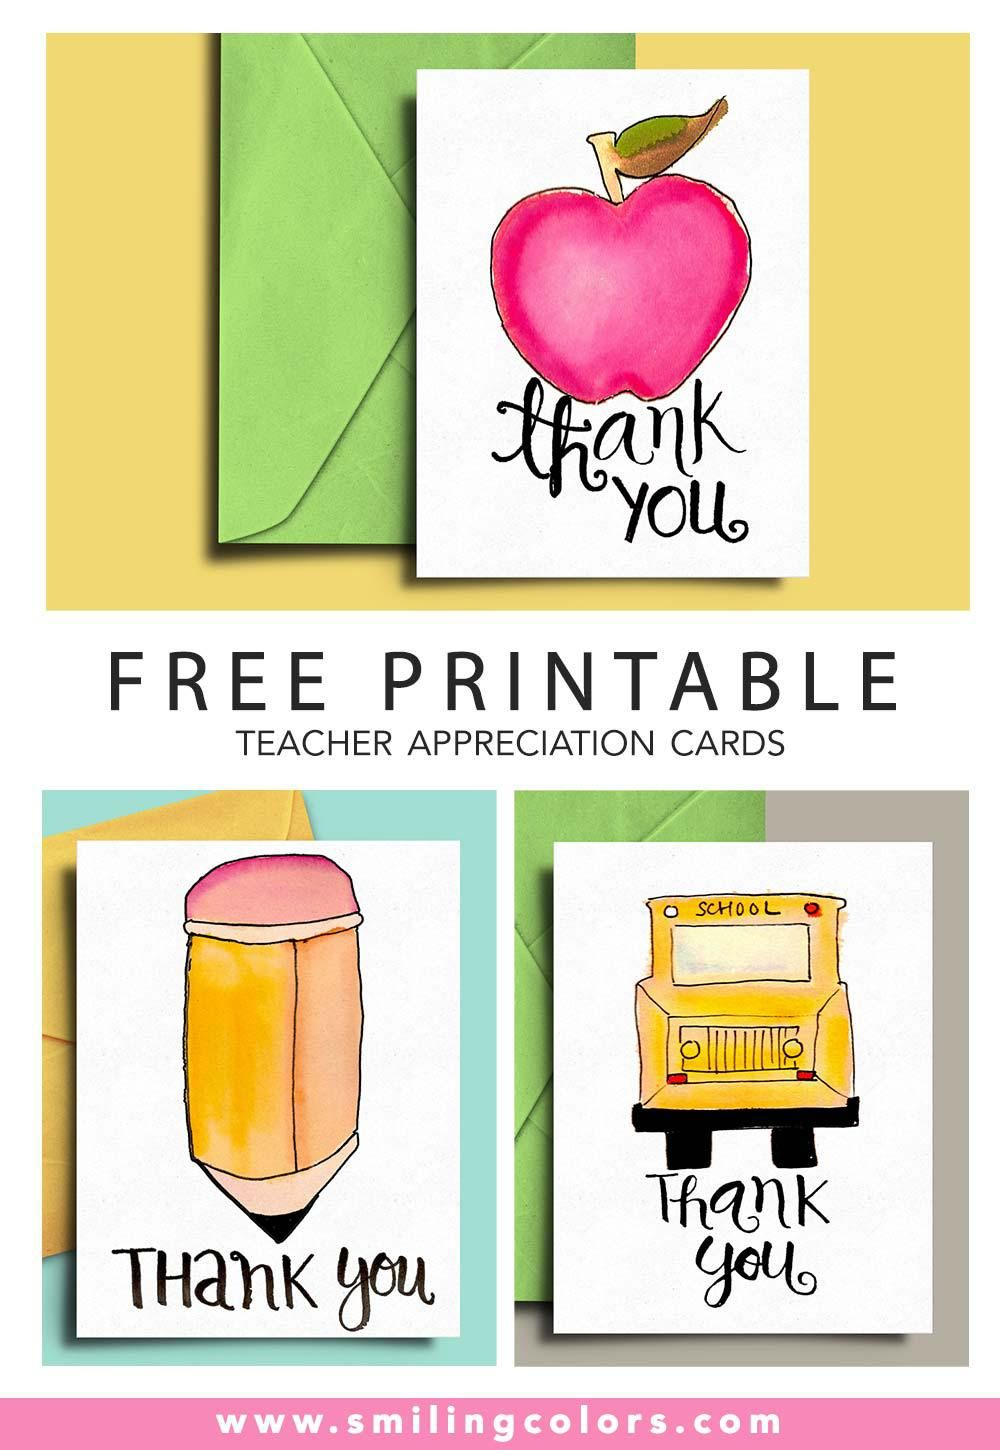 Thank you card for teacher and school bus driver with free printables m4hsunfo